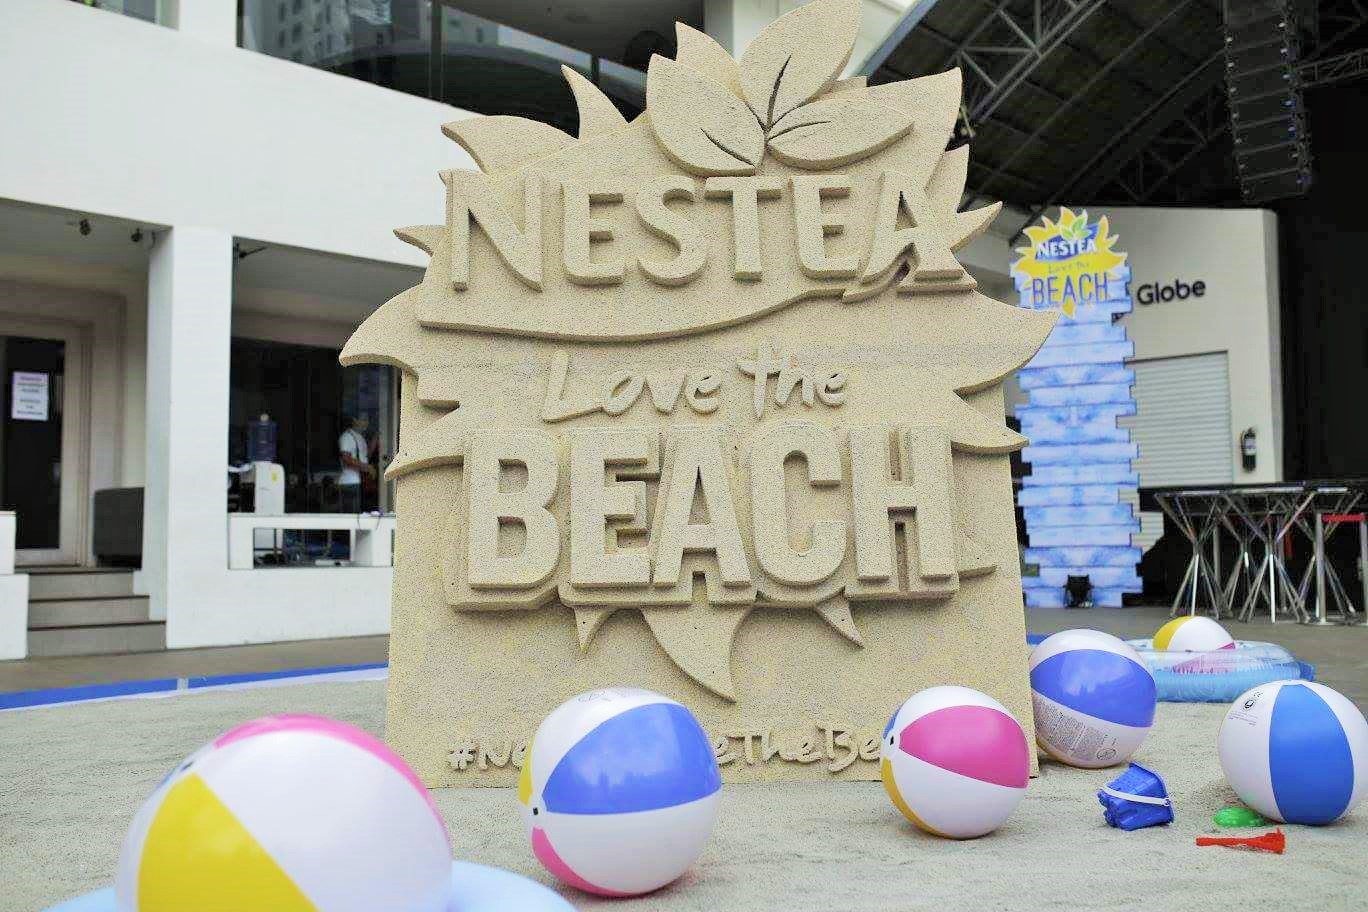 Nestea Chillax, bloggers event, Nestea Philippines